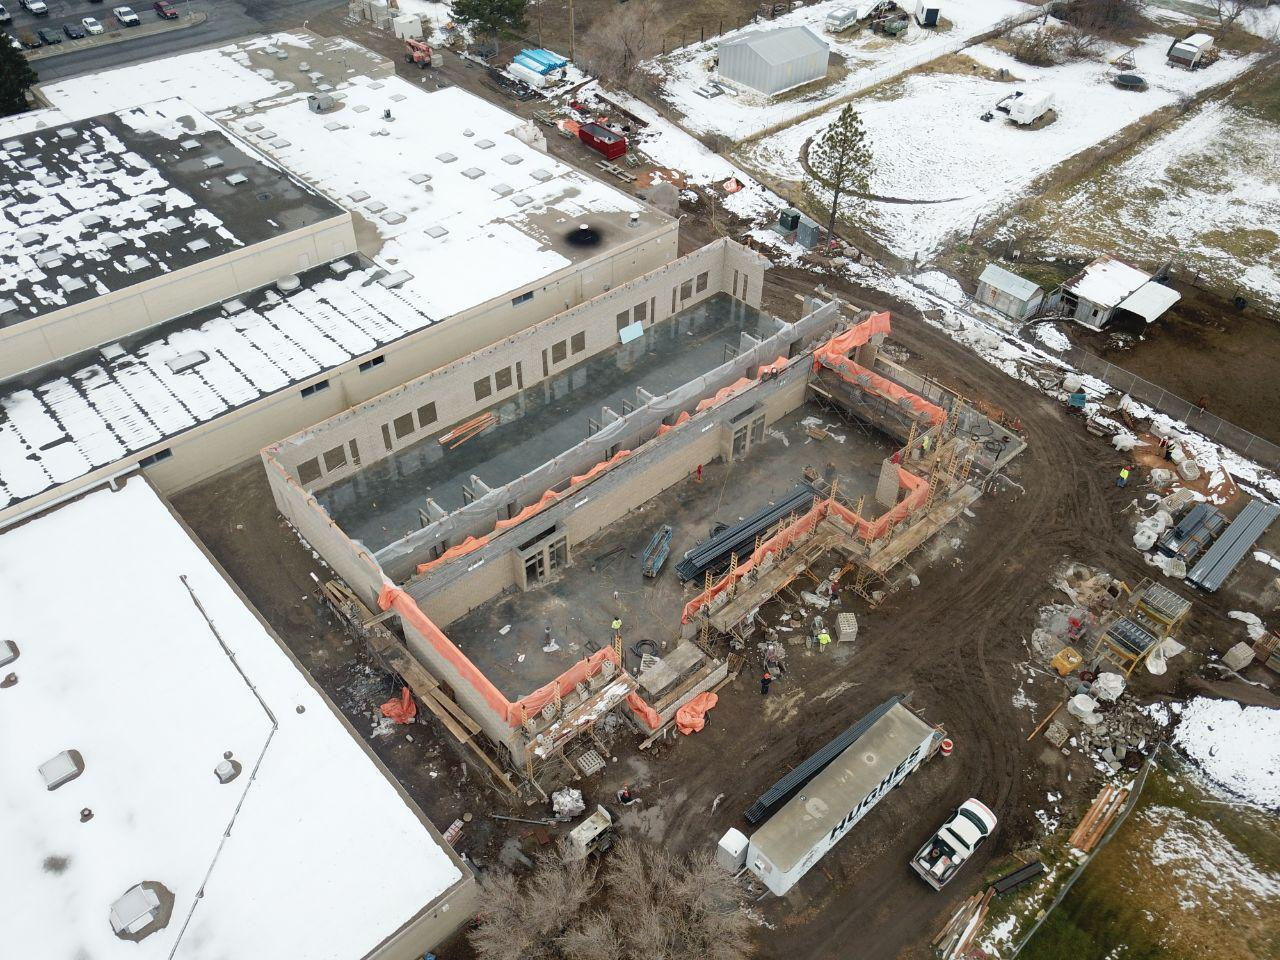 Arial view of building under construction